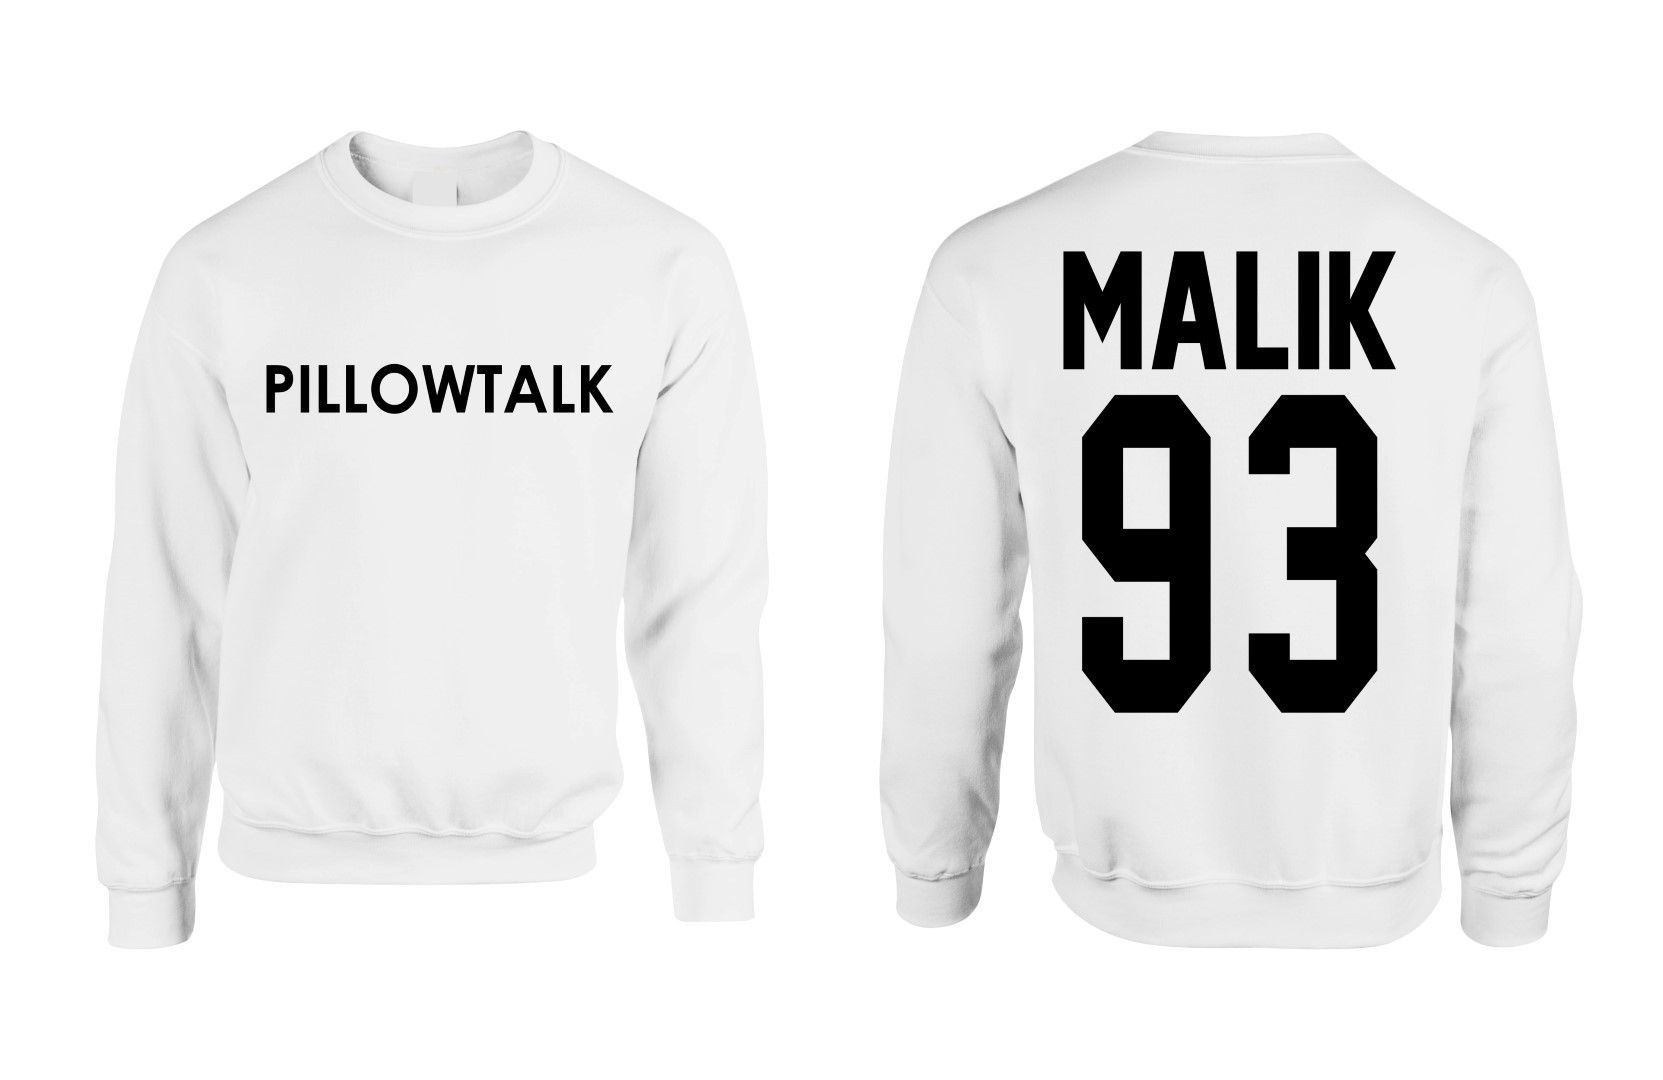 03623a59 zayn malik pillowtalk two side crewneck Sweatshirt Pullover front and back  2 sides Pillow Talk malik 93 former one direction shirt